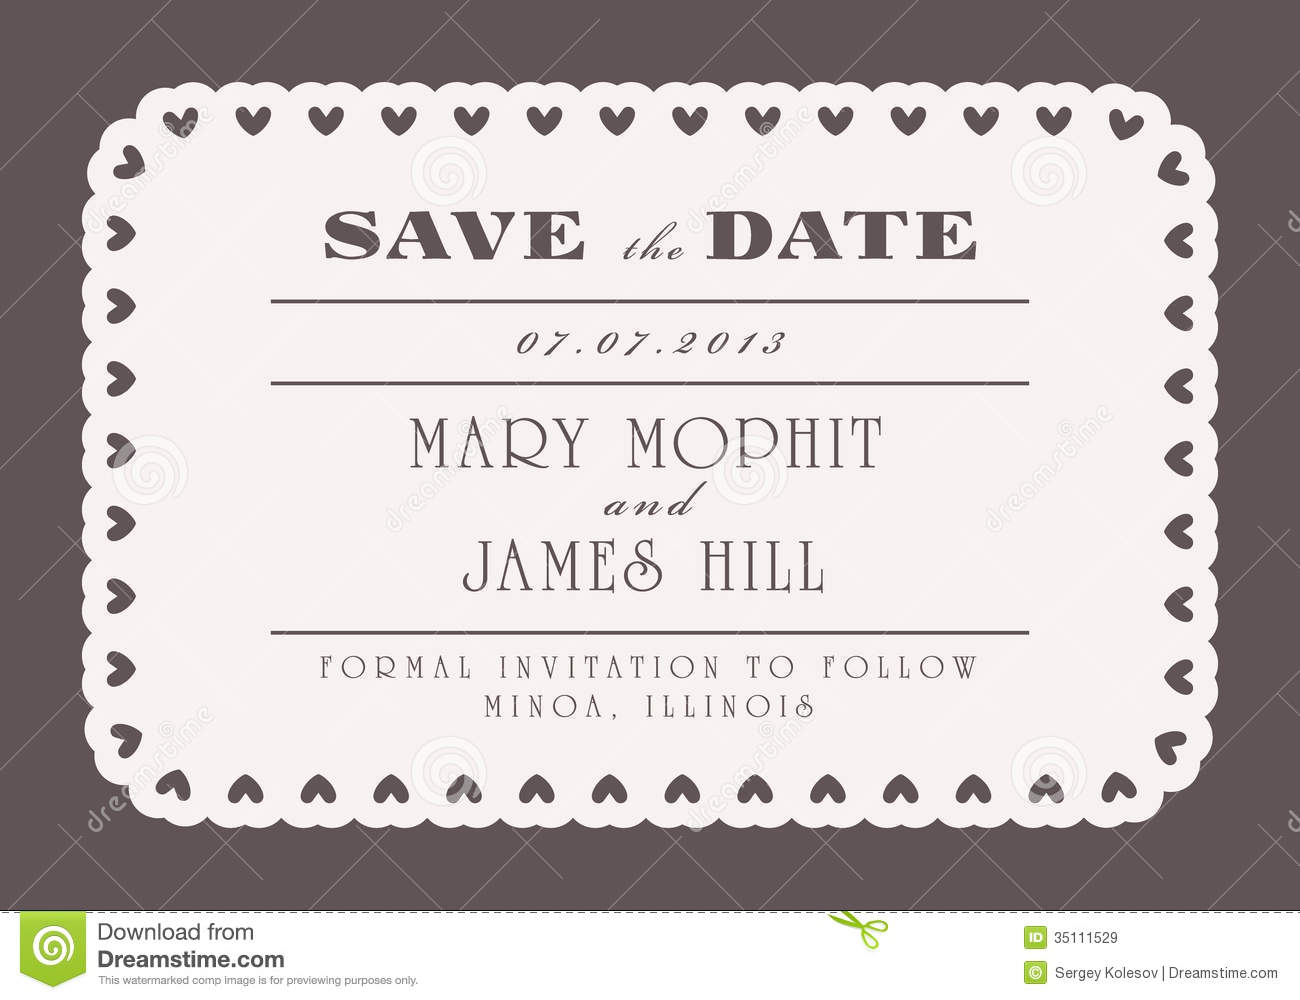 Save The Date Templates Free Download Boatjeremyeatonco - Save the date templates free download